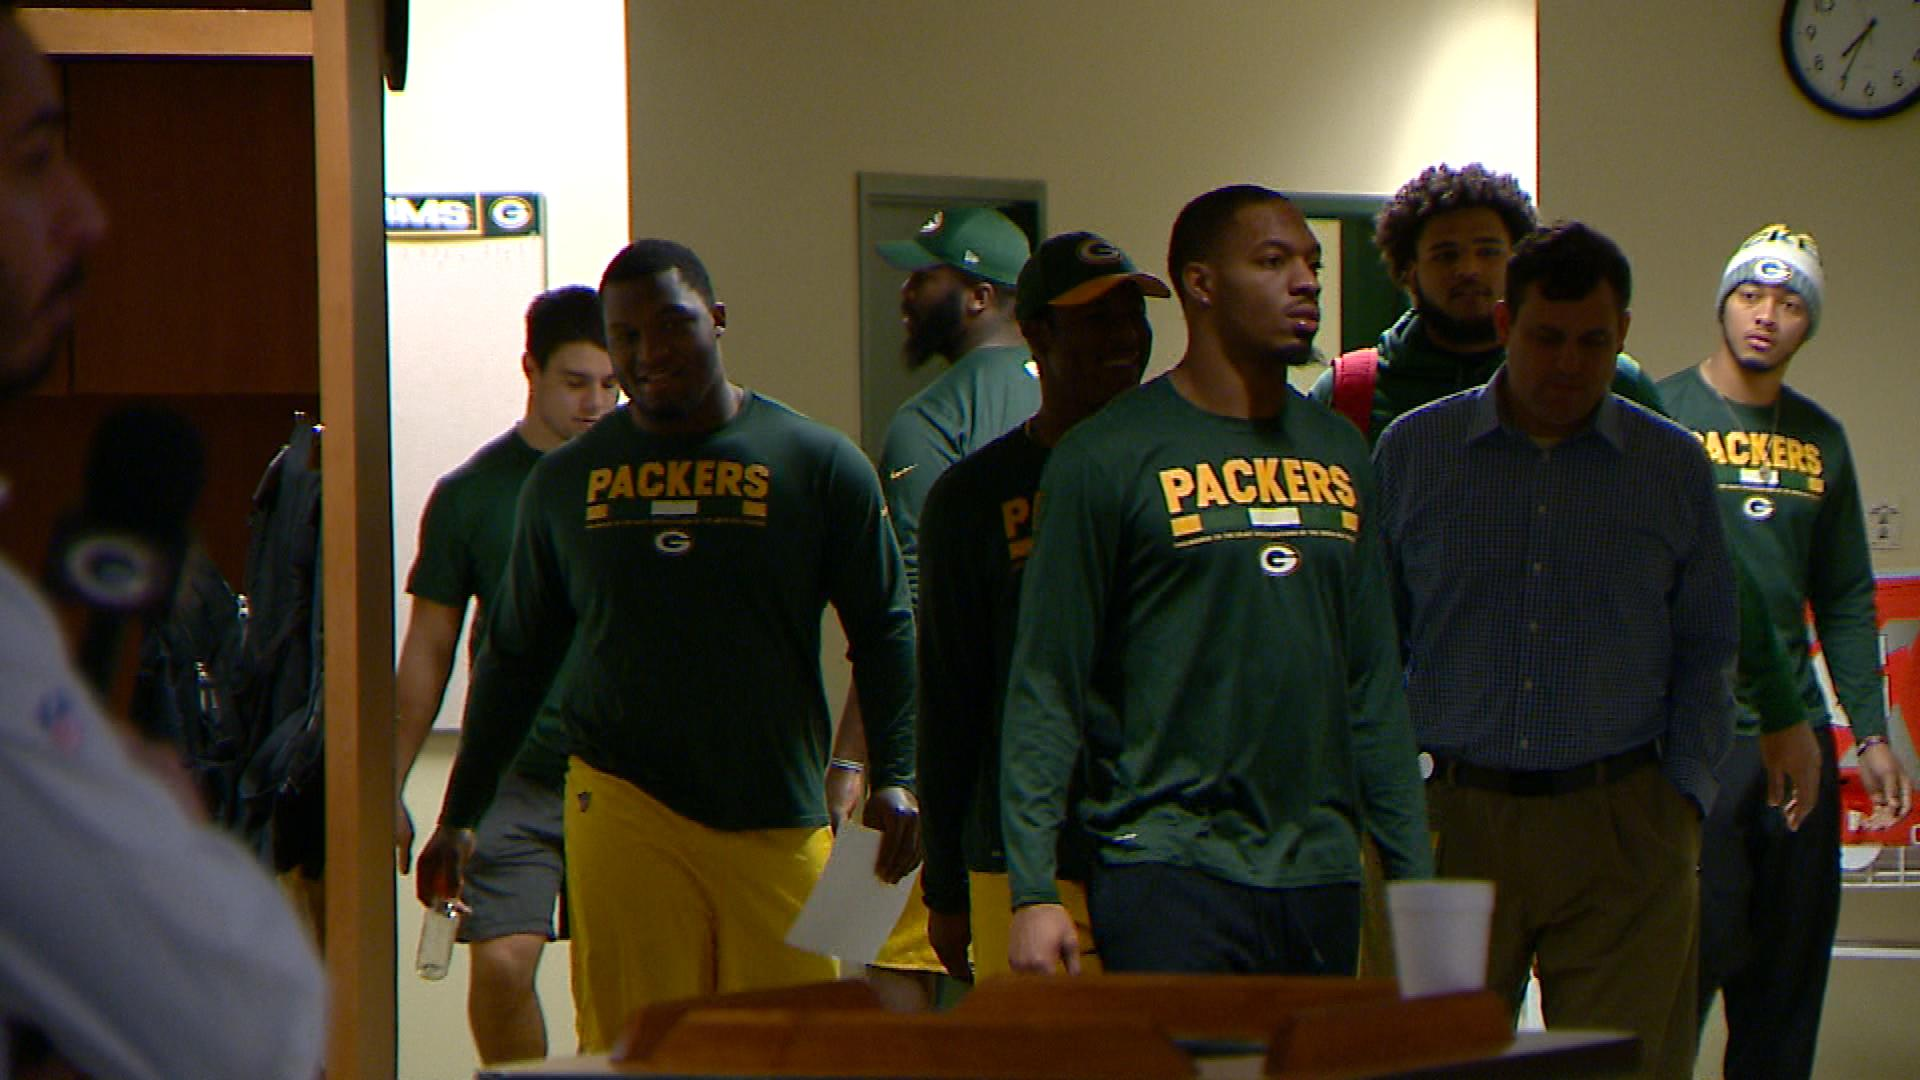 Green Bay Packers players return to the locker room after team meetings Jan. 2, 2018. (WLUK image)<p></p>